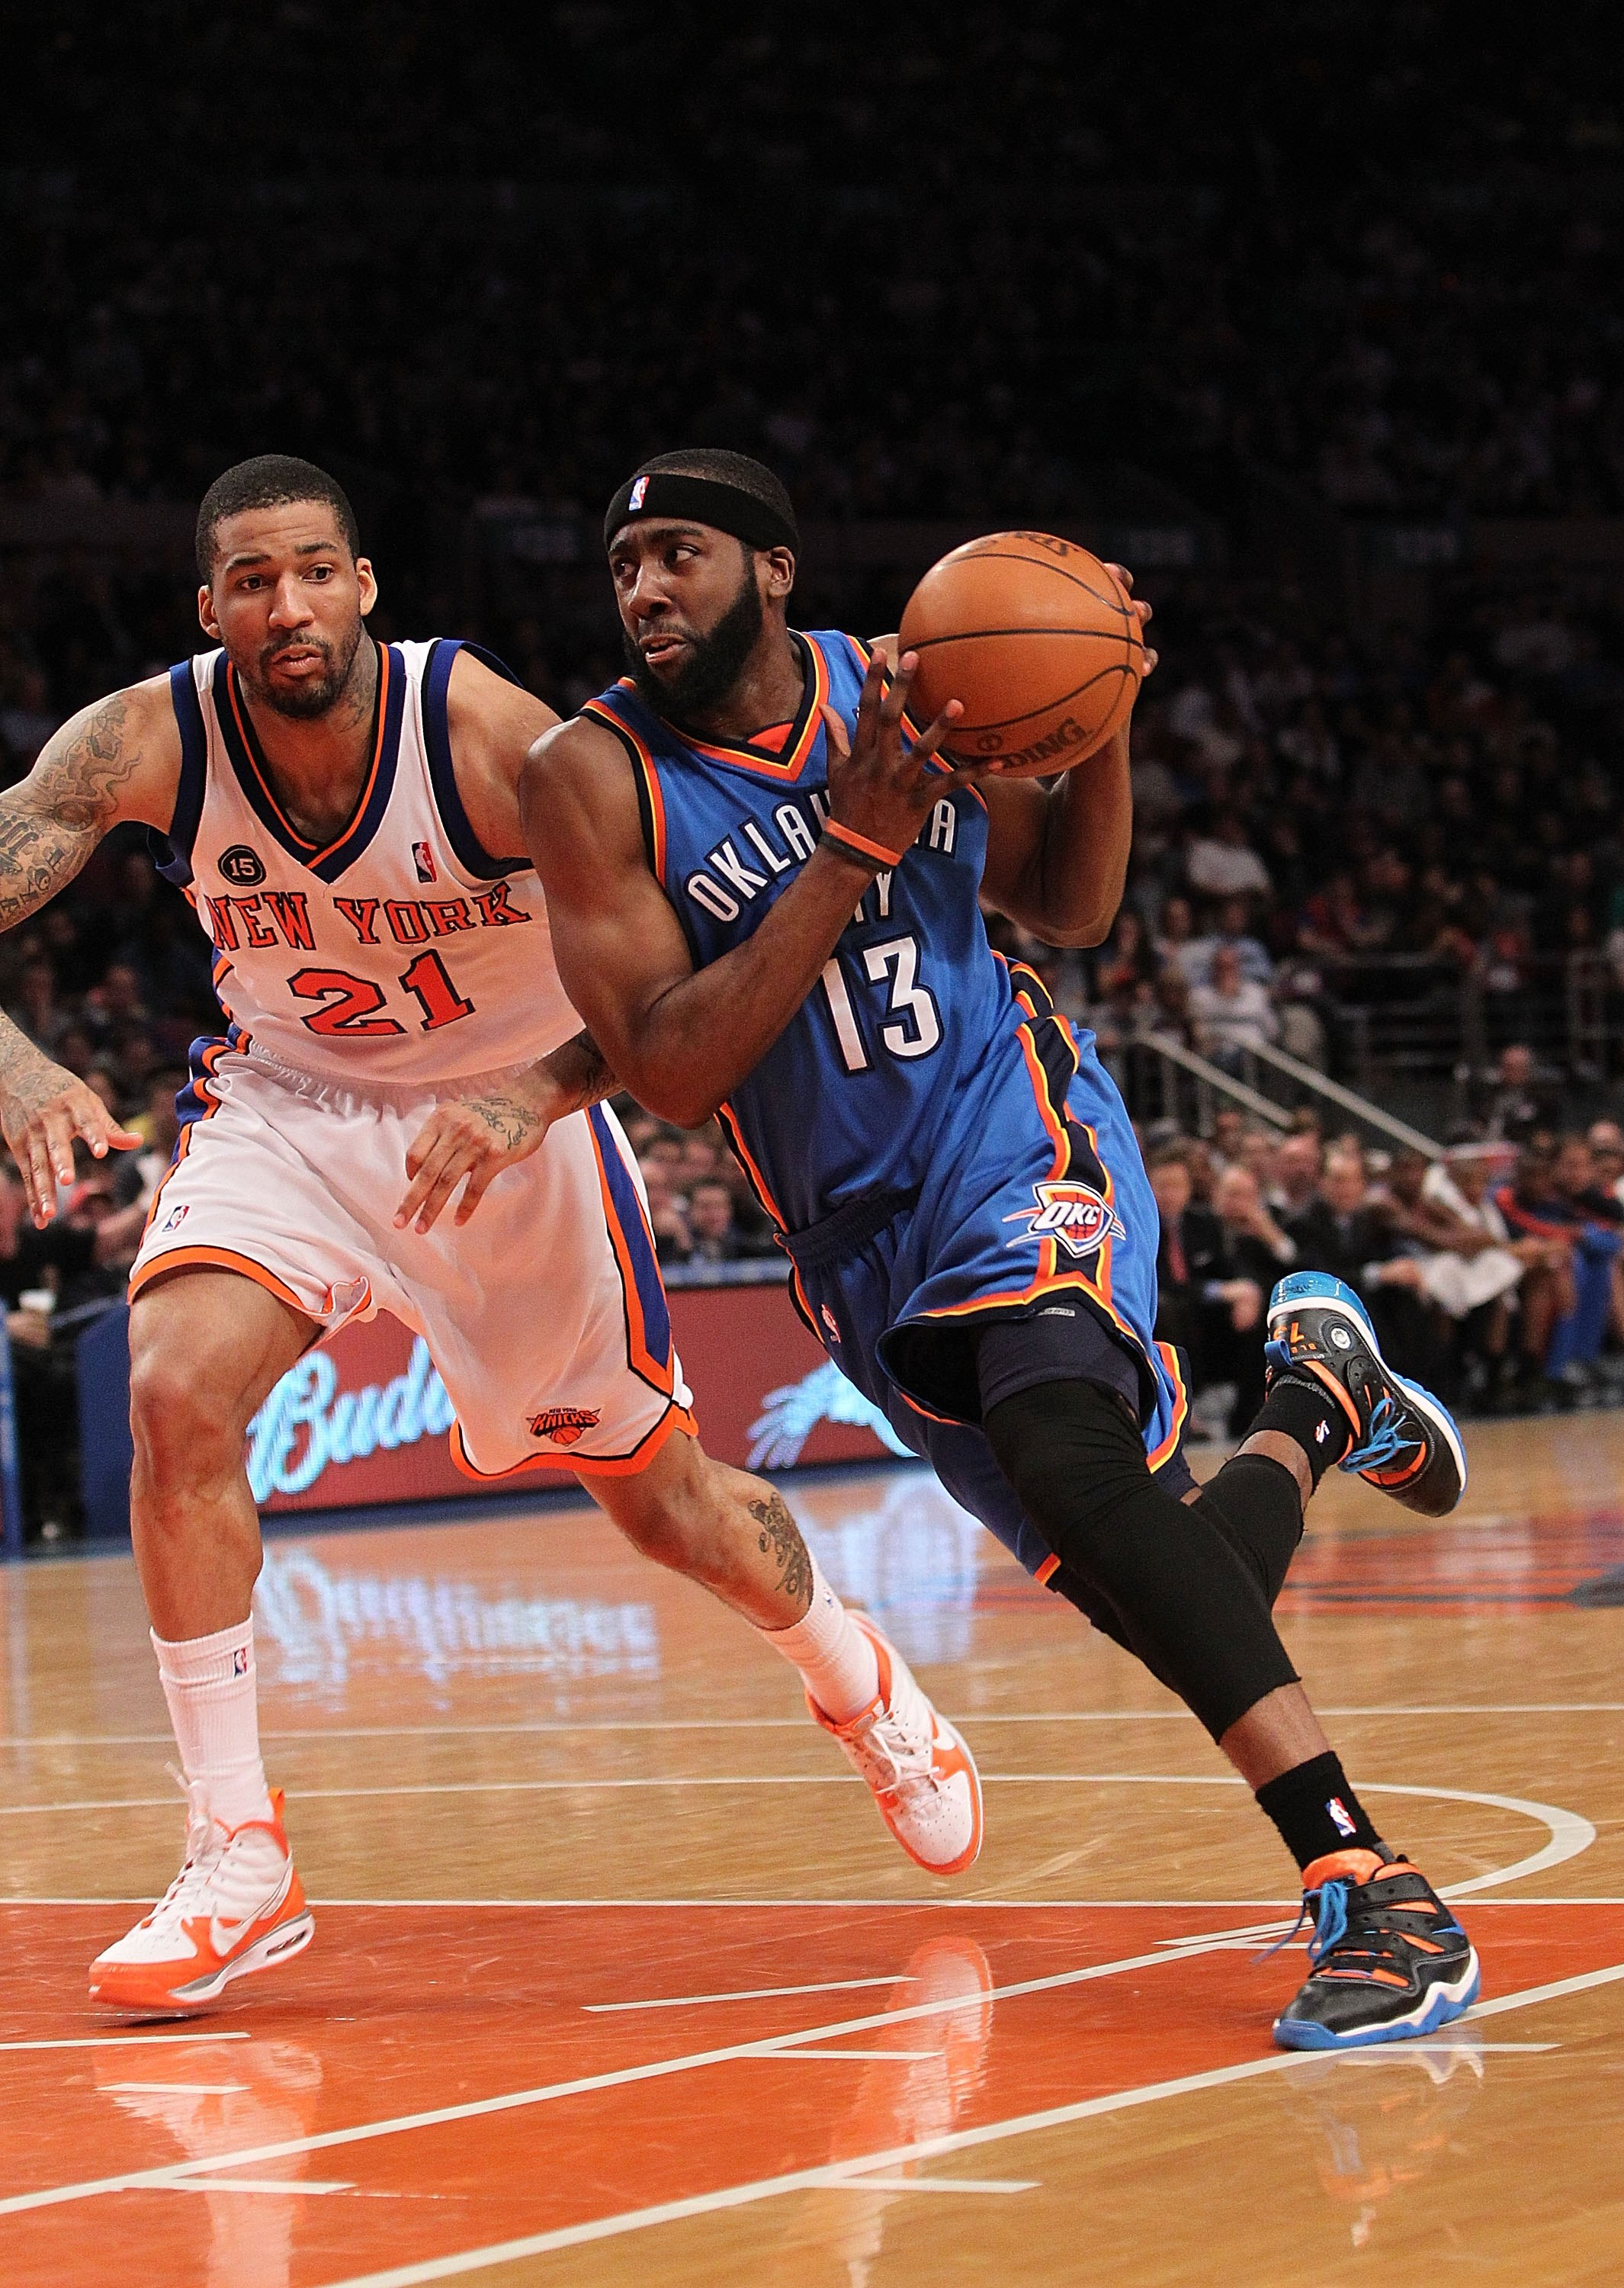 NEW YORK - FEBRUARY 20:  James Harden #13 of the Oklahoma City Thunder drives to the basket against Wilson Chandler #21 of the New York Knicks at Madison Square Garden on February 20, 2010 in New York, New York. NOTE TO USER: User expressly acknowledges a